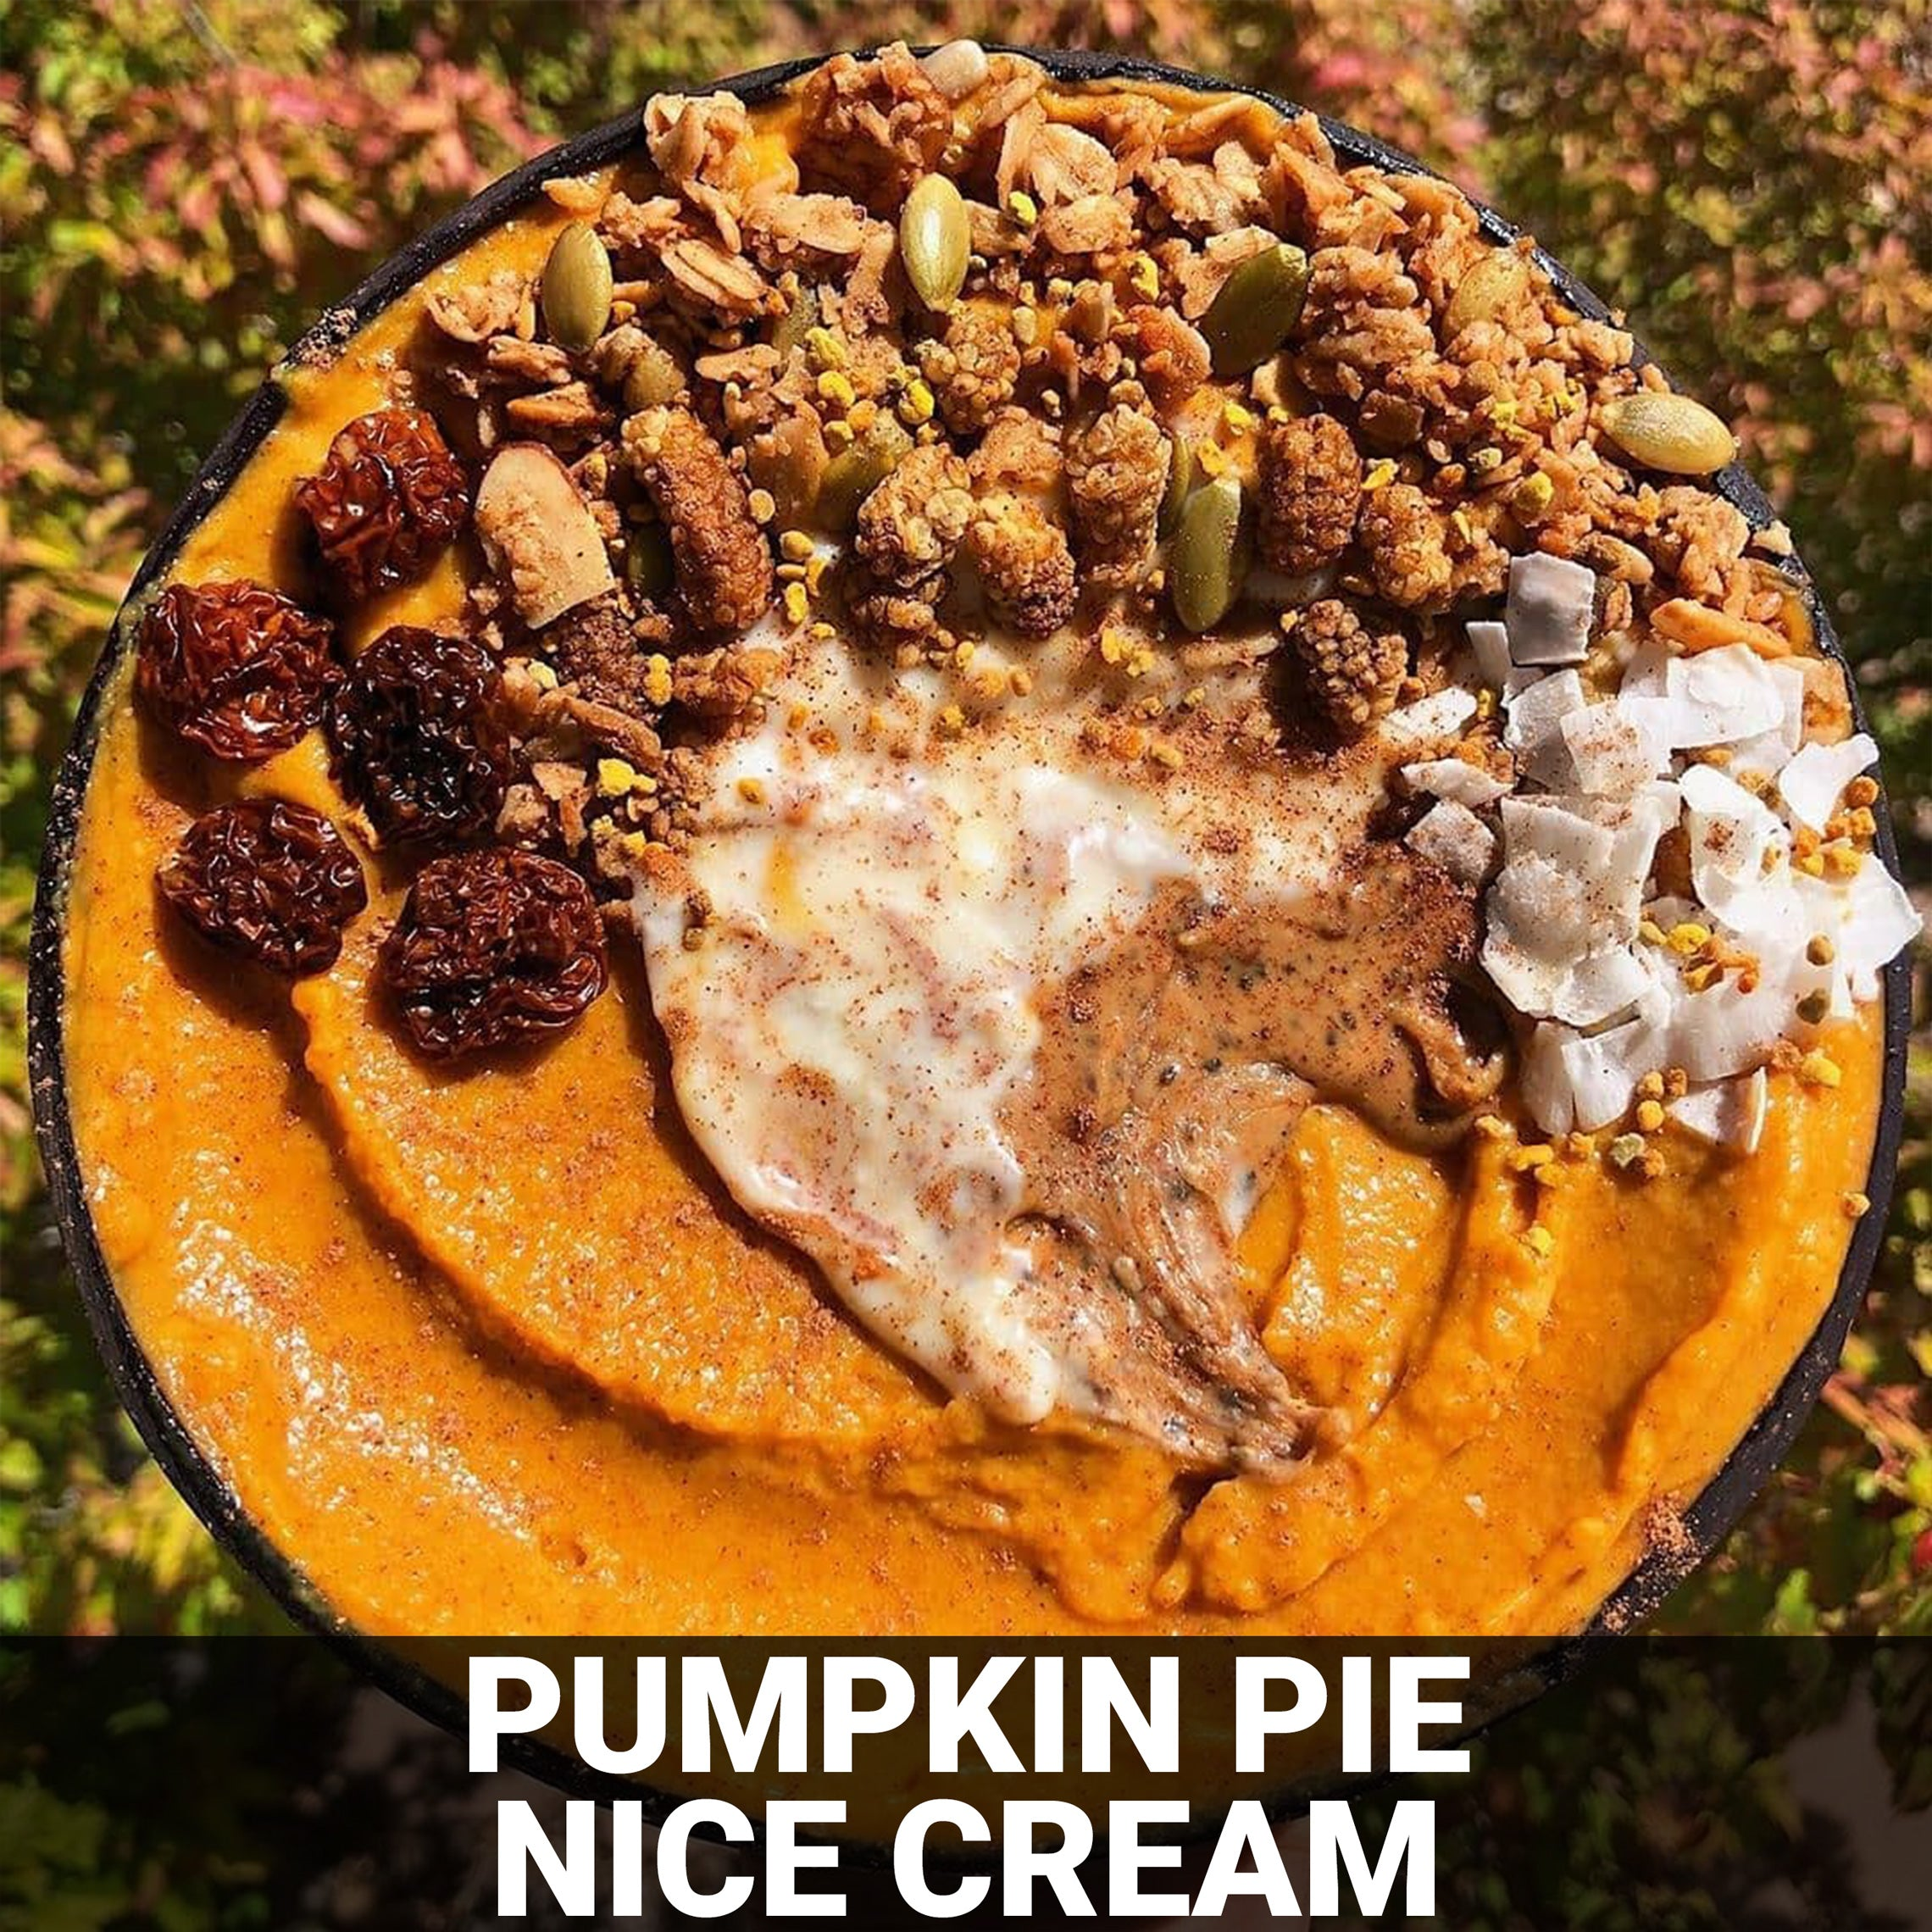 Pumpkin Pie Nice Cream Salad Recipe - Foods Alive